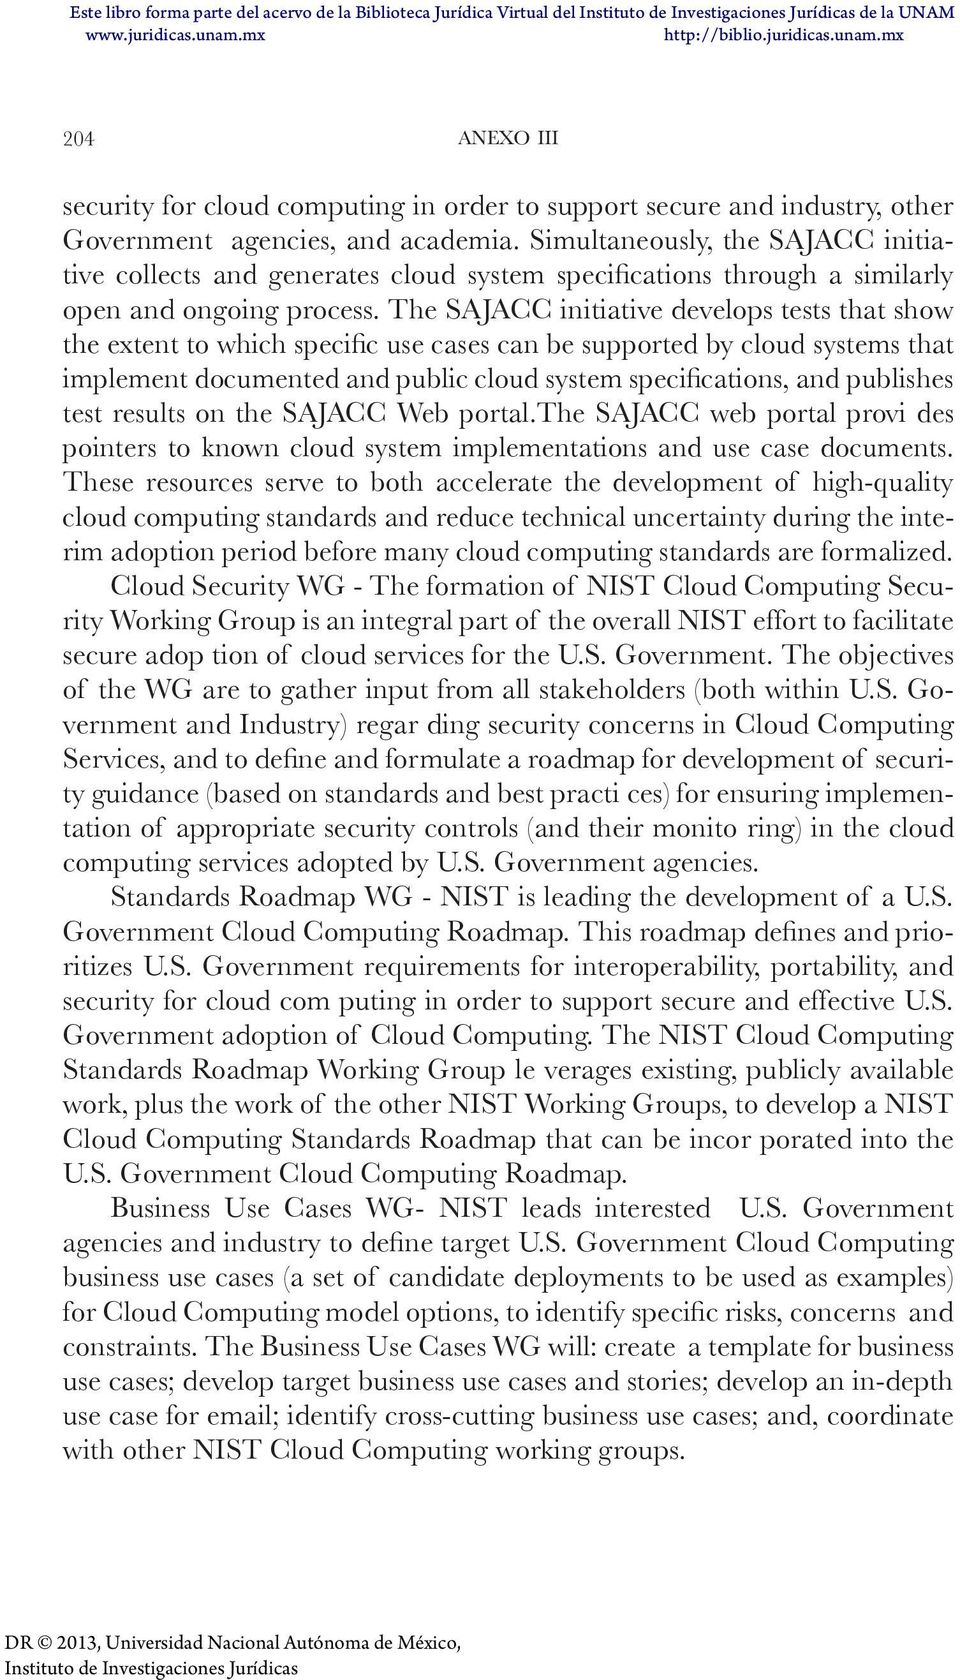 The SAJACC initiative develops tests that show the extent to which specific use cases can be supported by cloud systems that implement documented and public cloud system specifications, and publishes